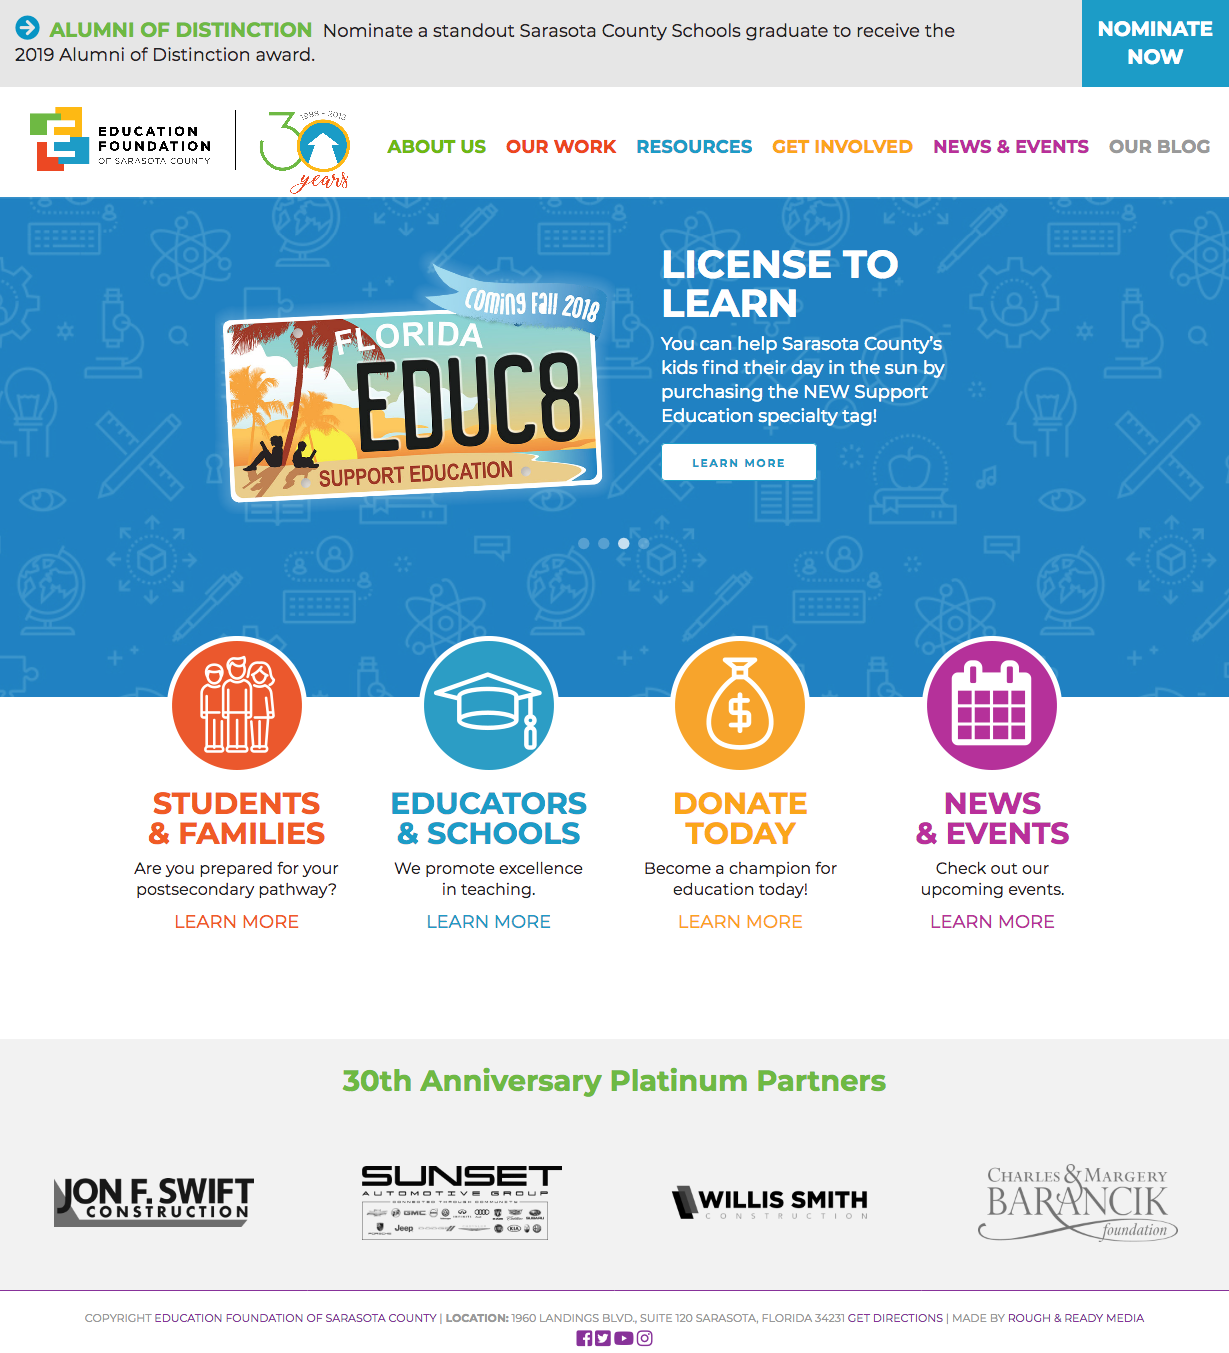 Education Foundation of Sarasota County Website Design by Rough & Ready Media